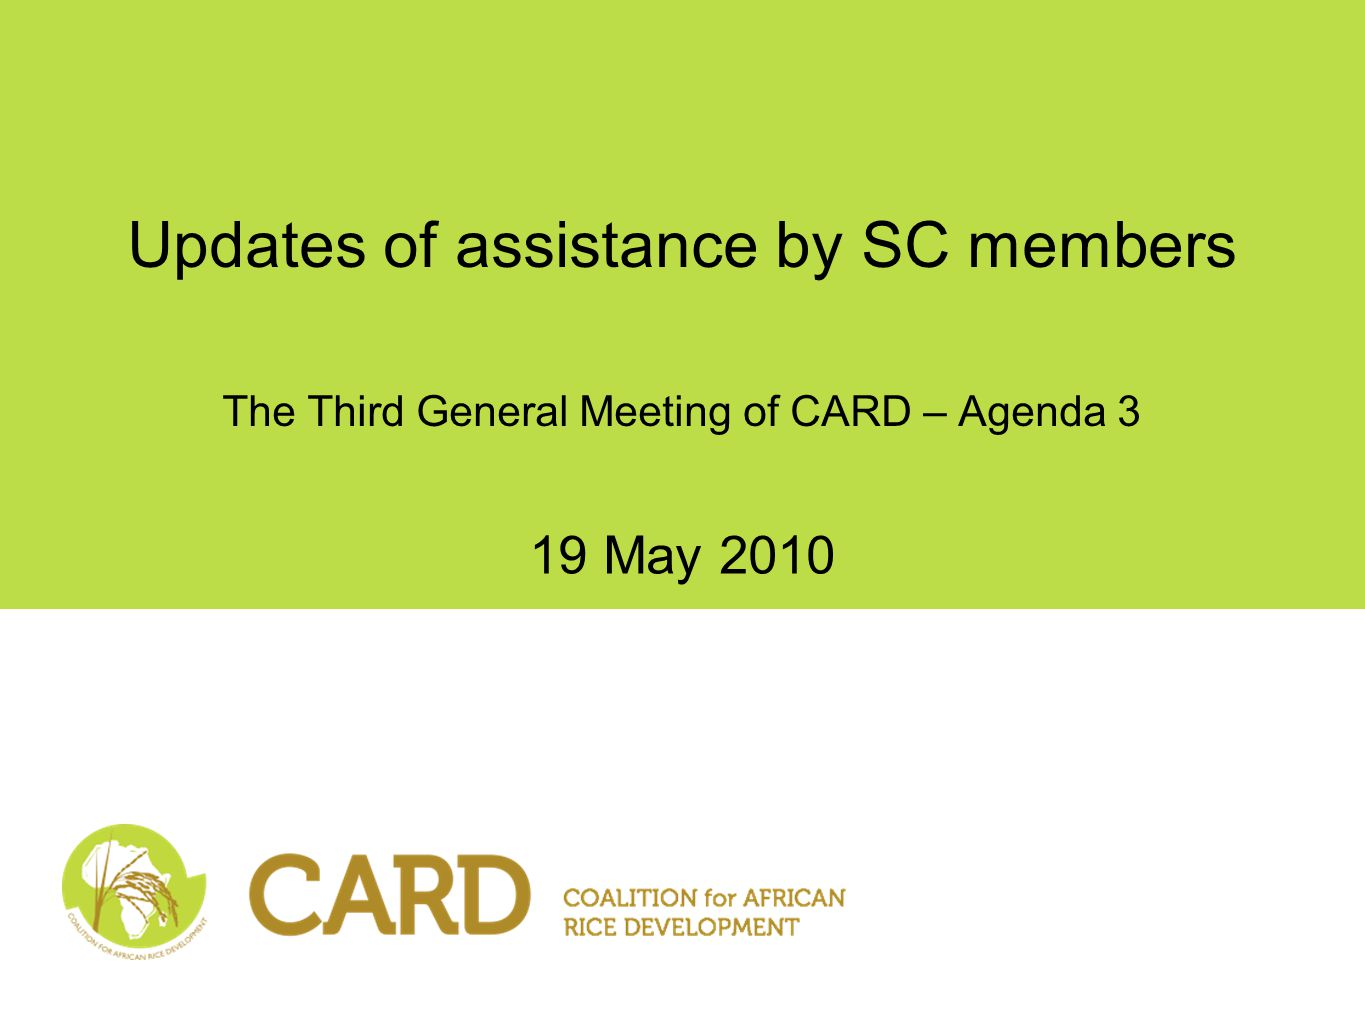 Updates of assistance by SC members The Third General Meeting of CARD – Agenda 3 19 May 2010